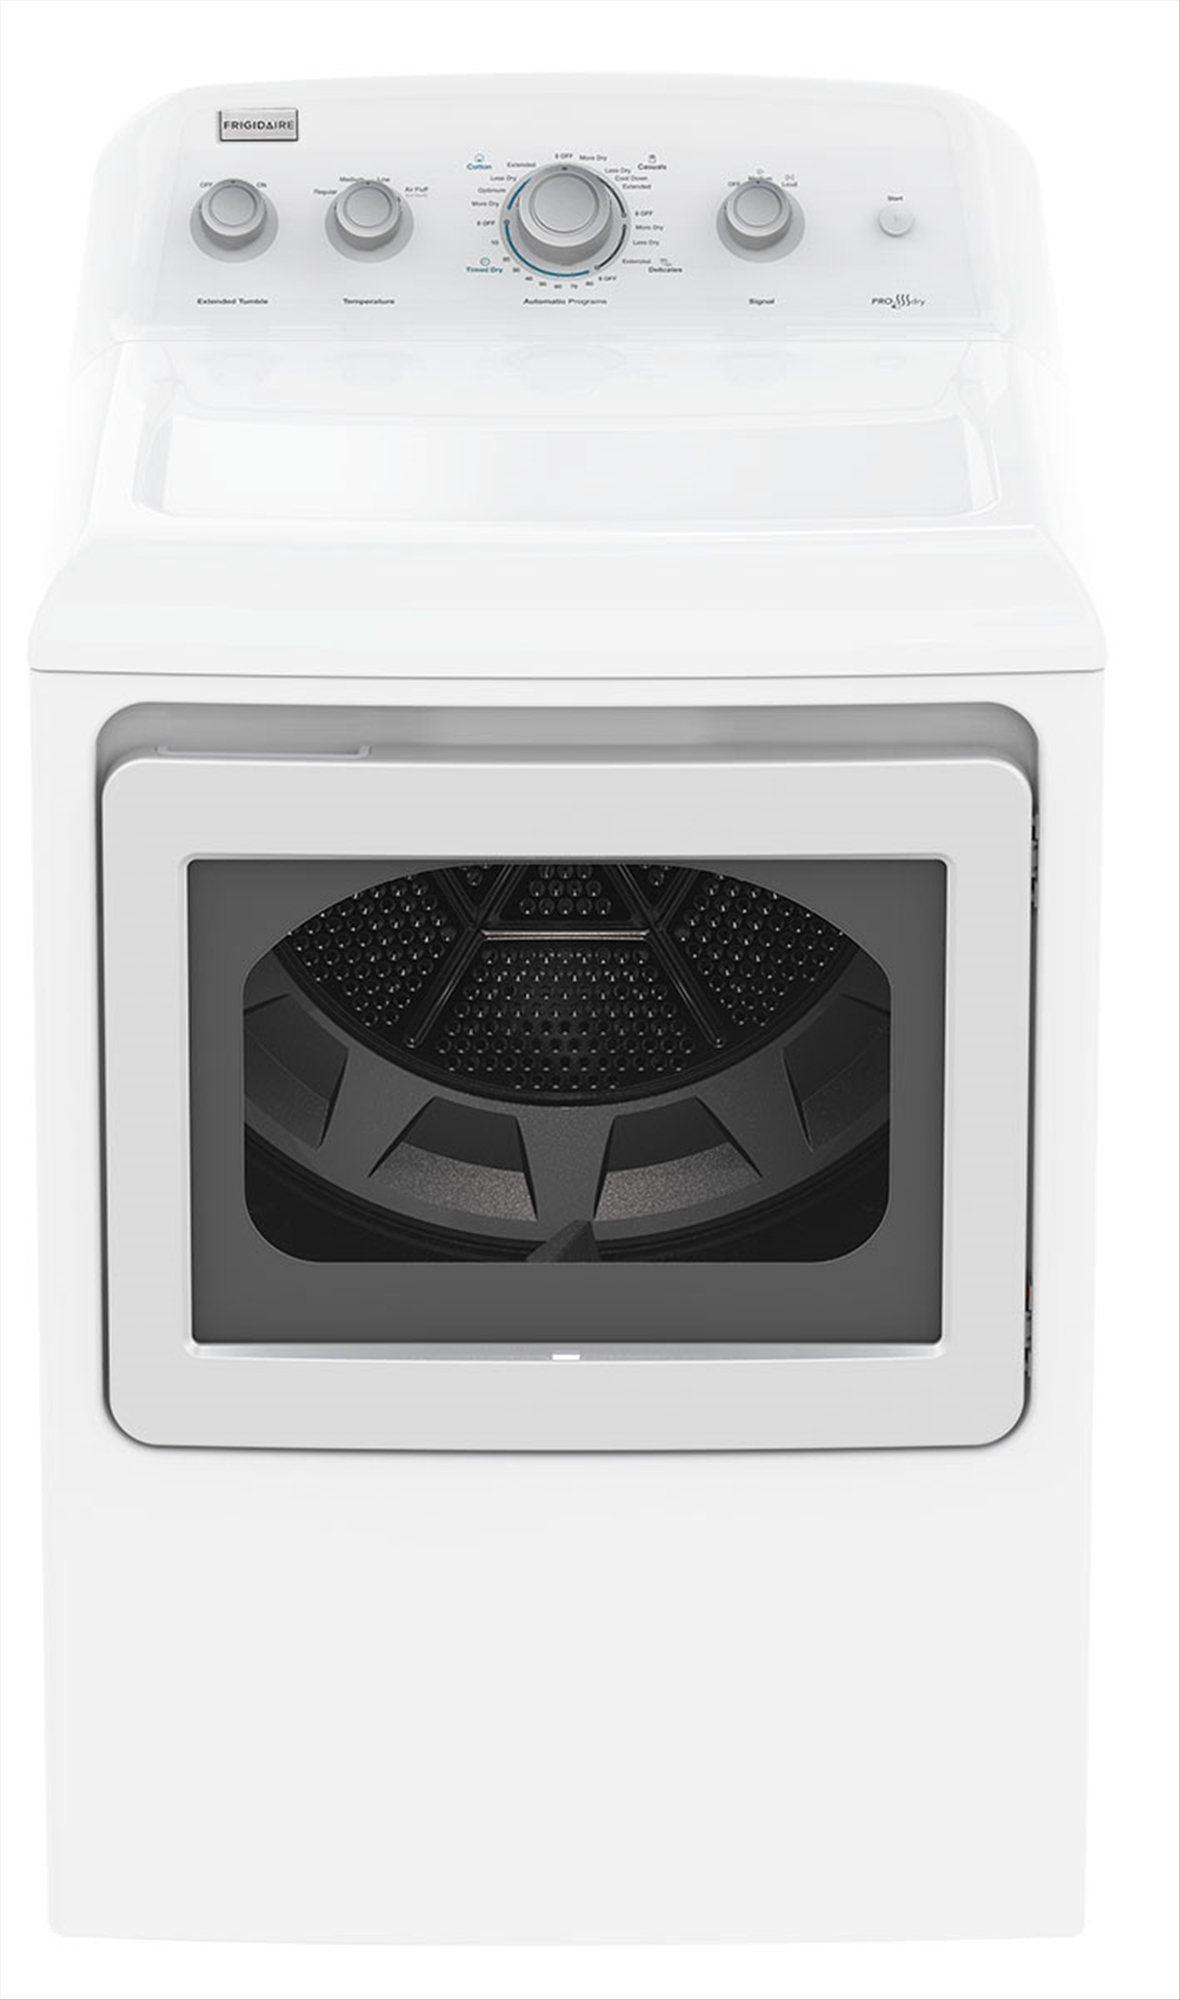 frigidaire lo us and new download hi load dryer introduces res electrolux pedestal front washer